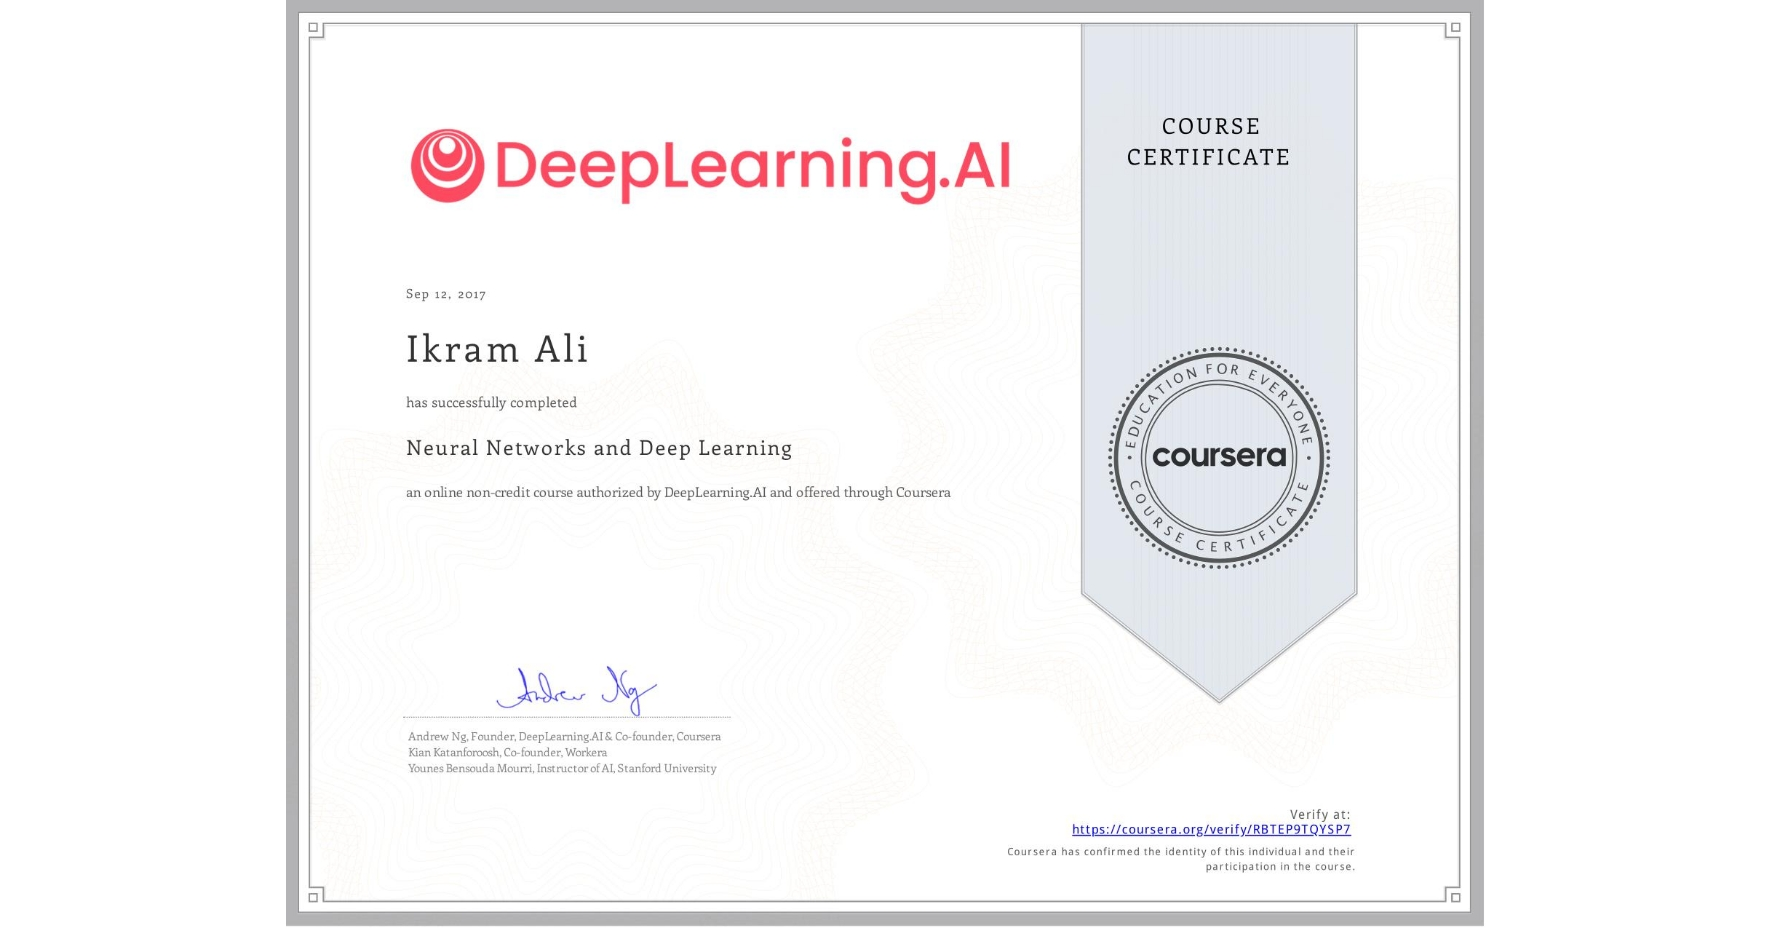 View certificate for Ikram Ali, Neural Networks and Deep Learning, an online non-credit course authorized by DeepLearning.AI and offered through Coursera